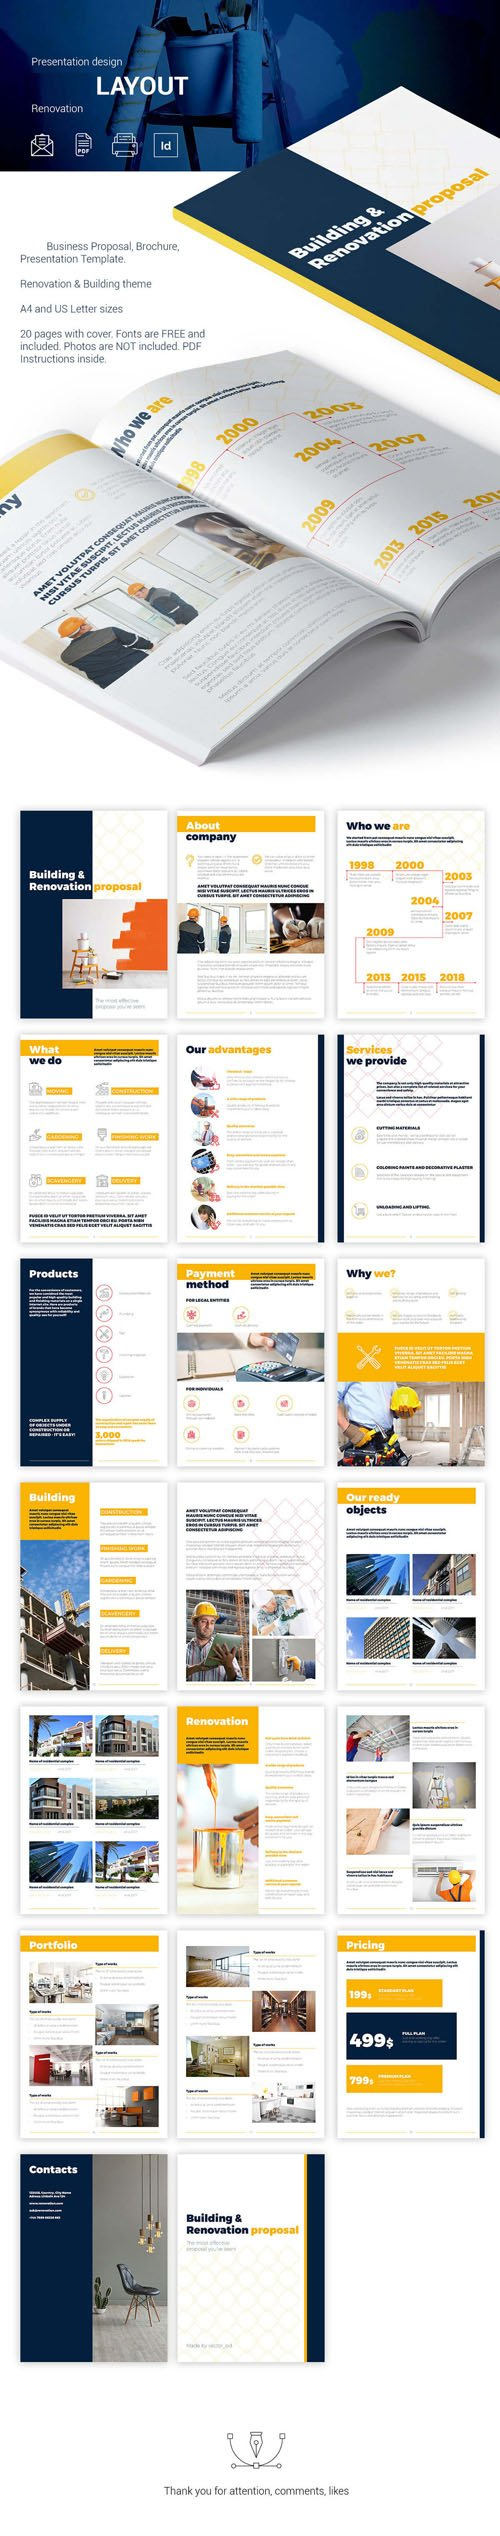 Building & Revonation Proposal Presentation Indesign Template